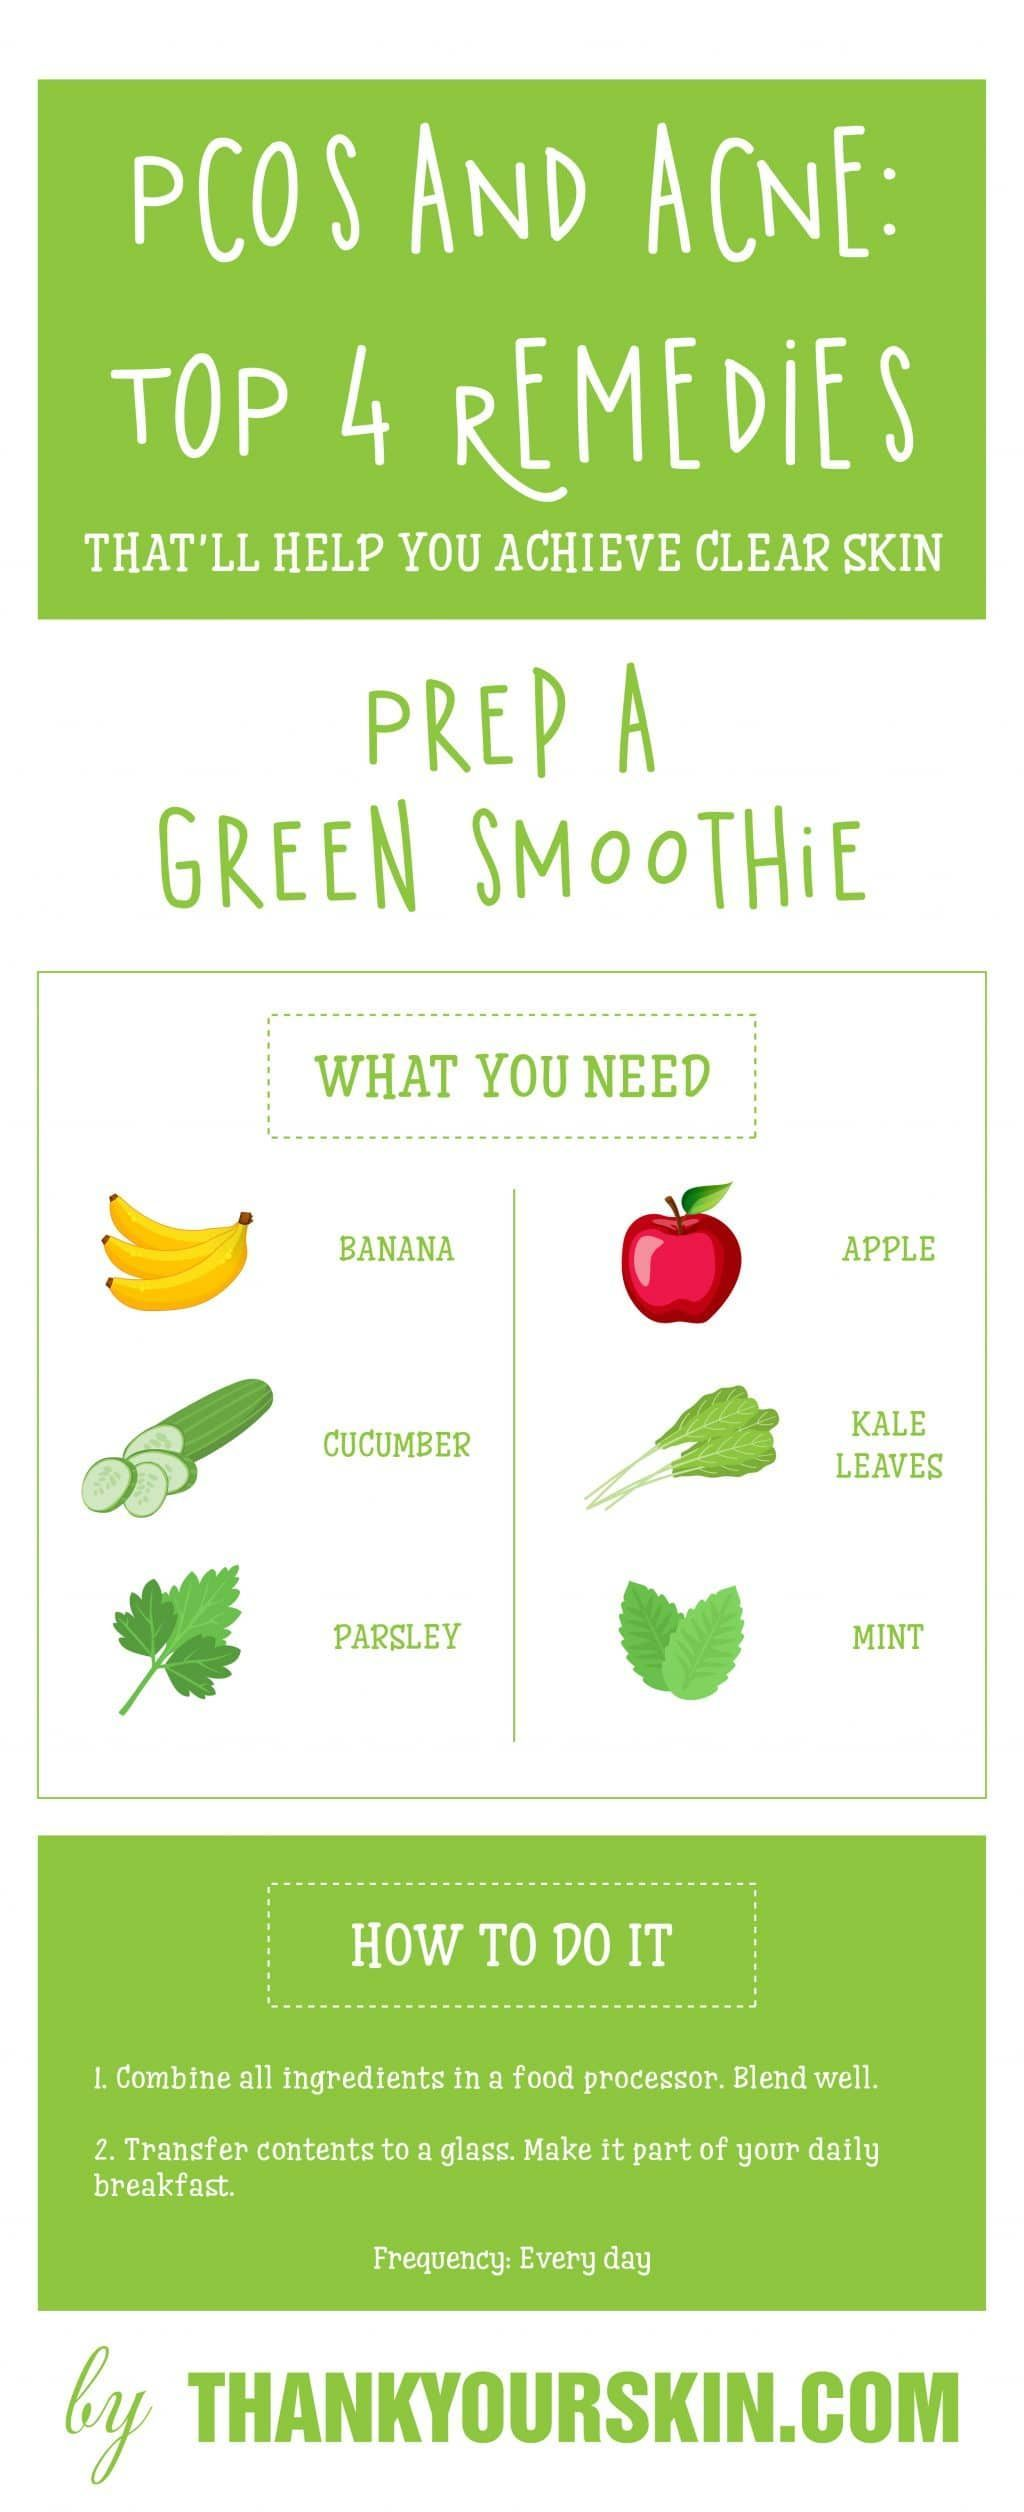 Green smoothies go a long way in helping to clear your skin diet